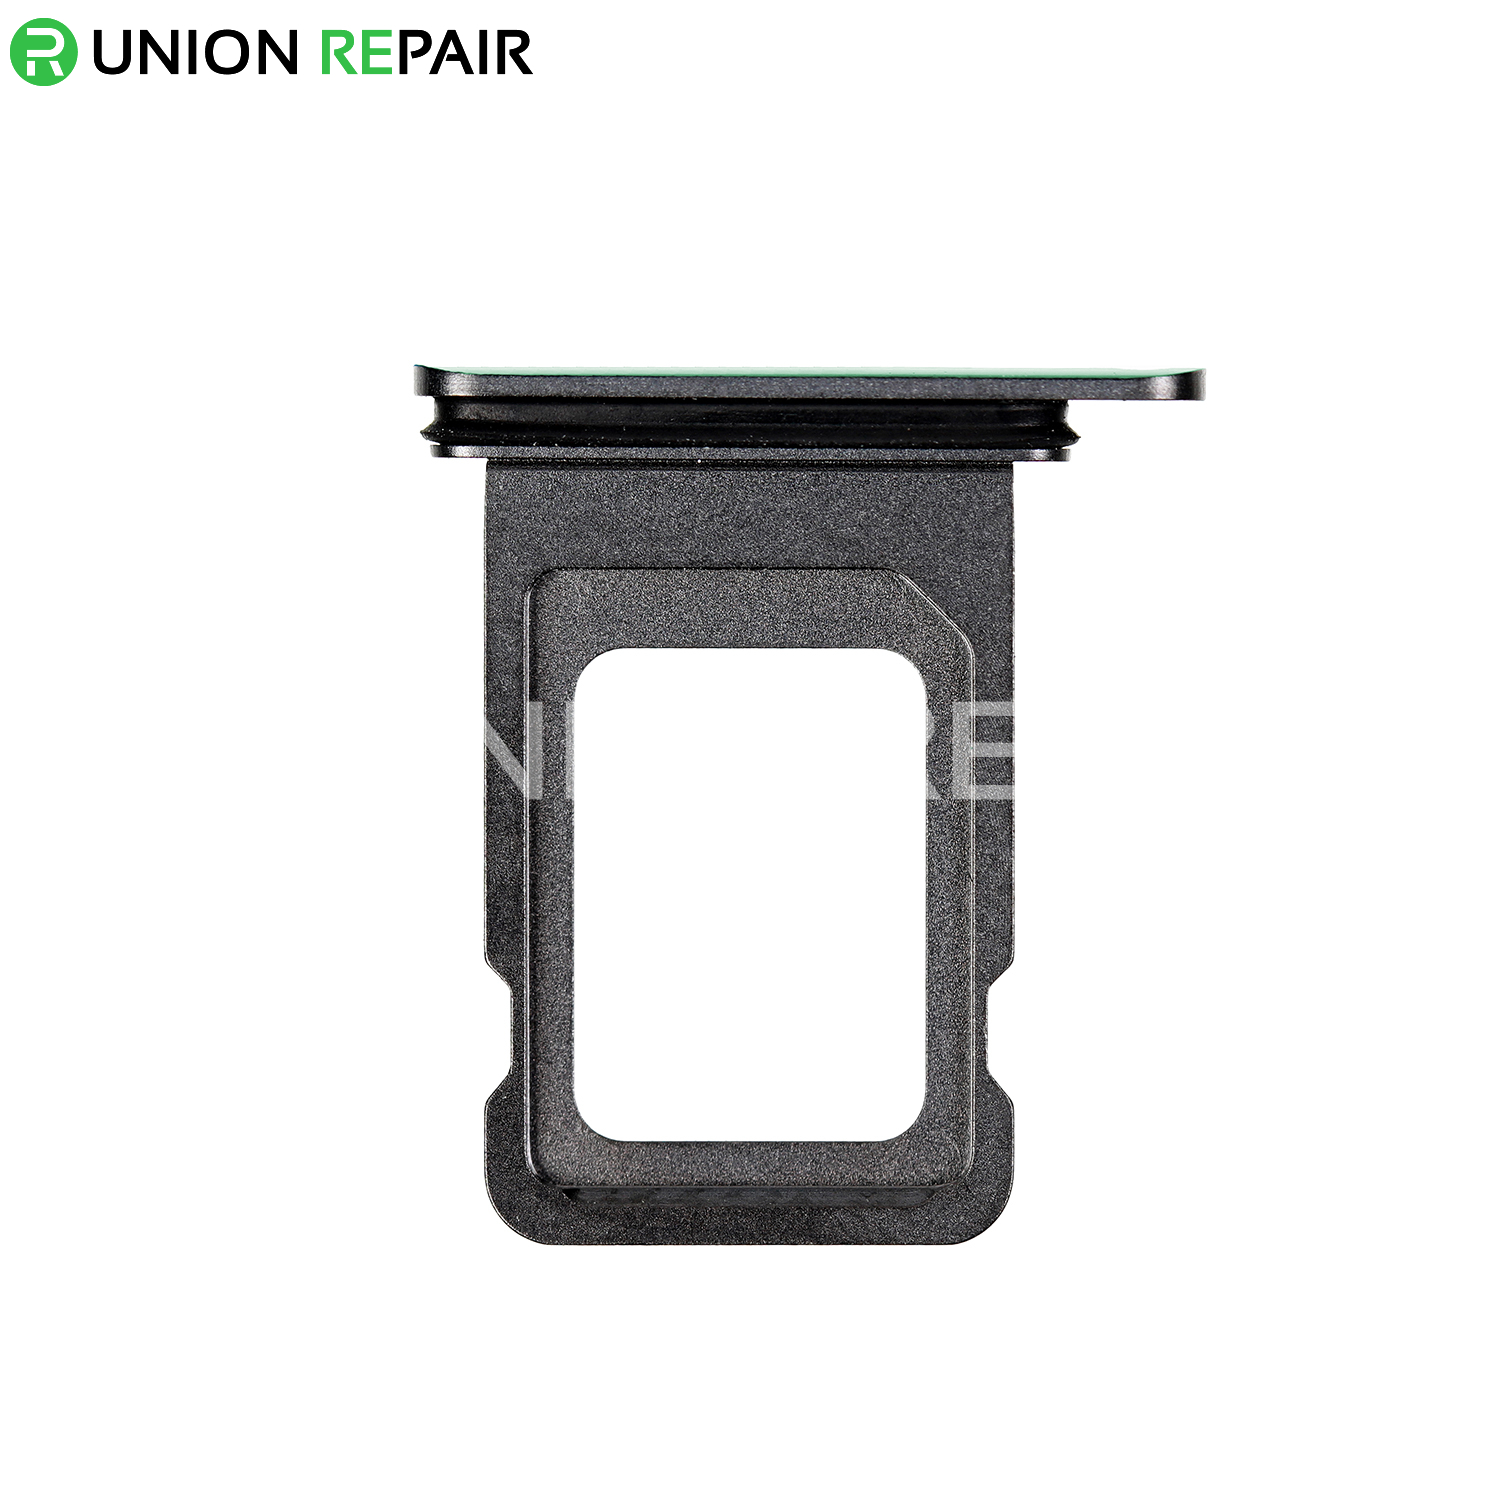 Replacement for iPhone 11 Pro/11 Pro Max Single SIM Card Tray - Midnight Green